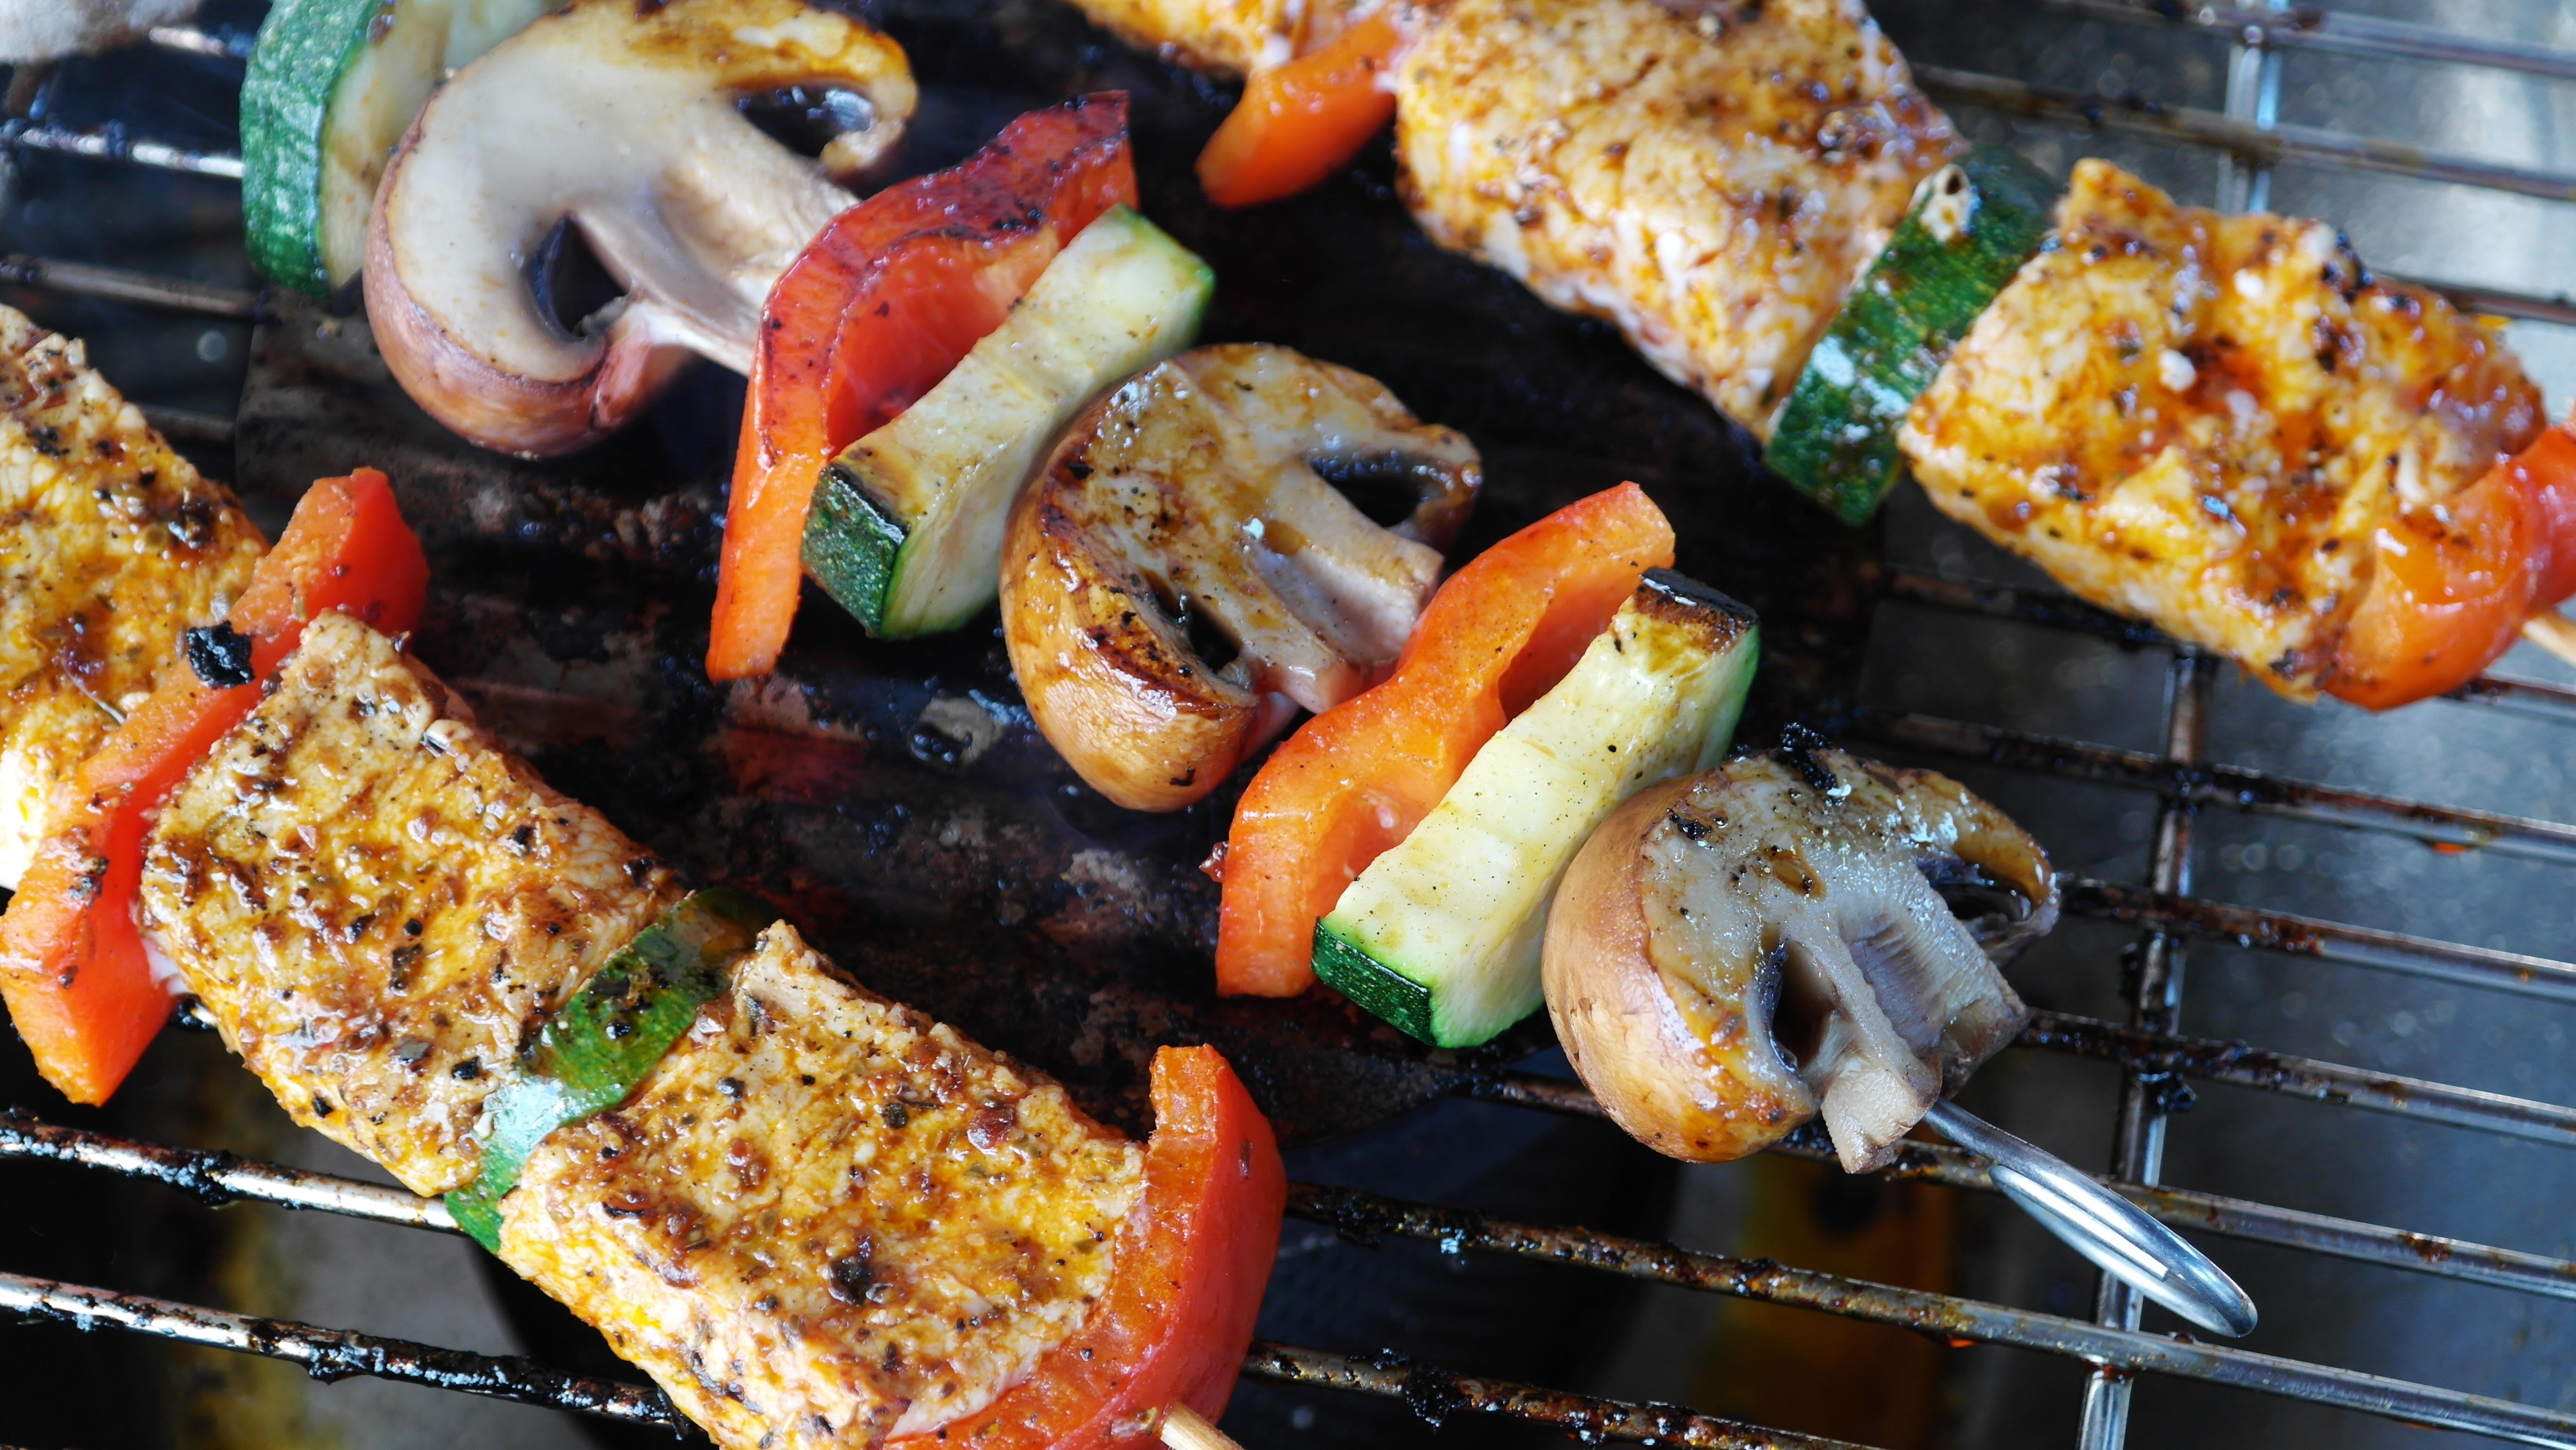 food-meat-vegetables-barbecue-meal-cuisine-skewer-champignons-dish-produce-grilling-asian-food-skewers-kebab-grilled-food-brochette-mediterranean-food-souvlaki-tandoori-chicken-559317.jpg